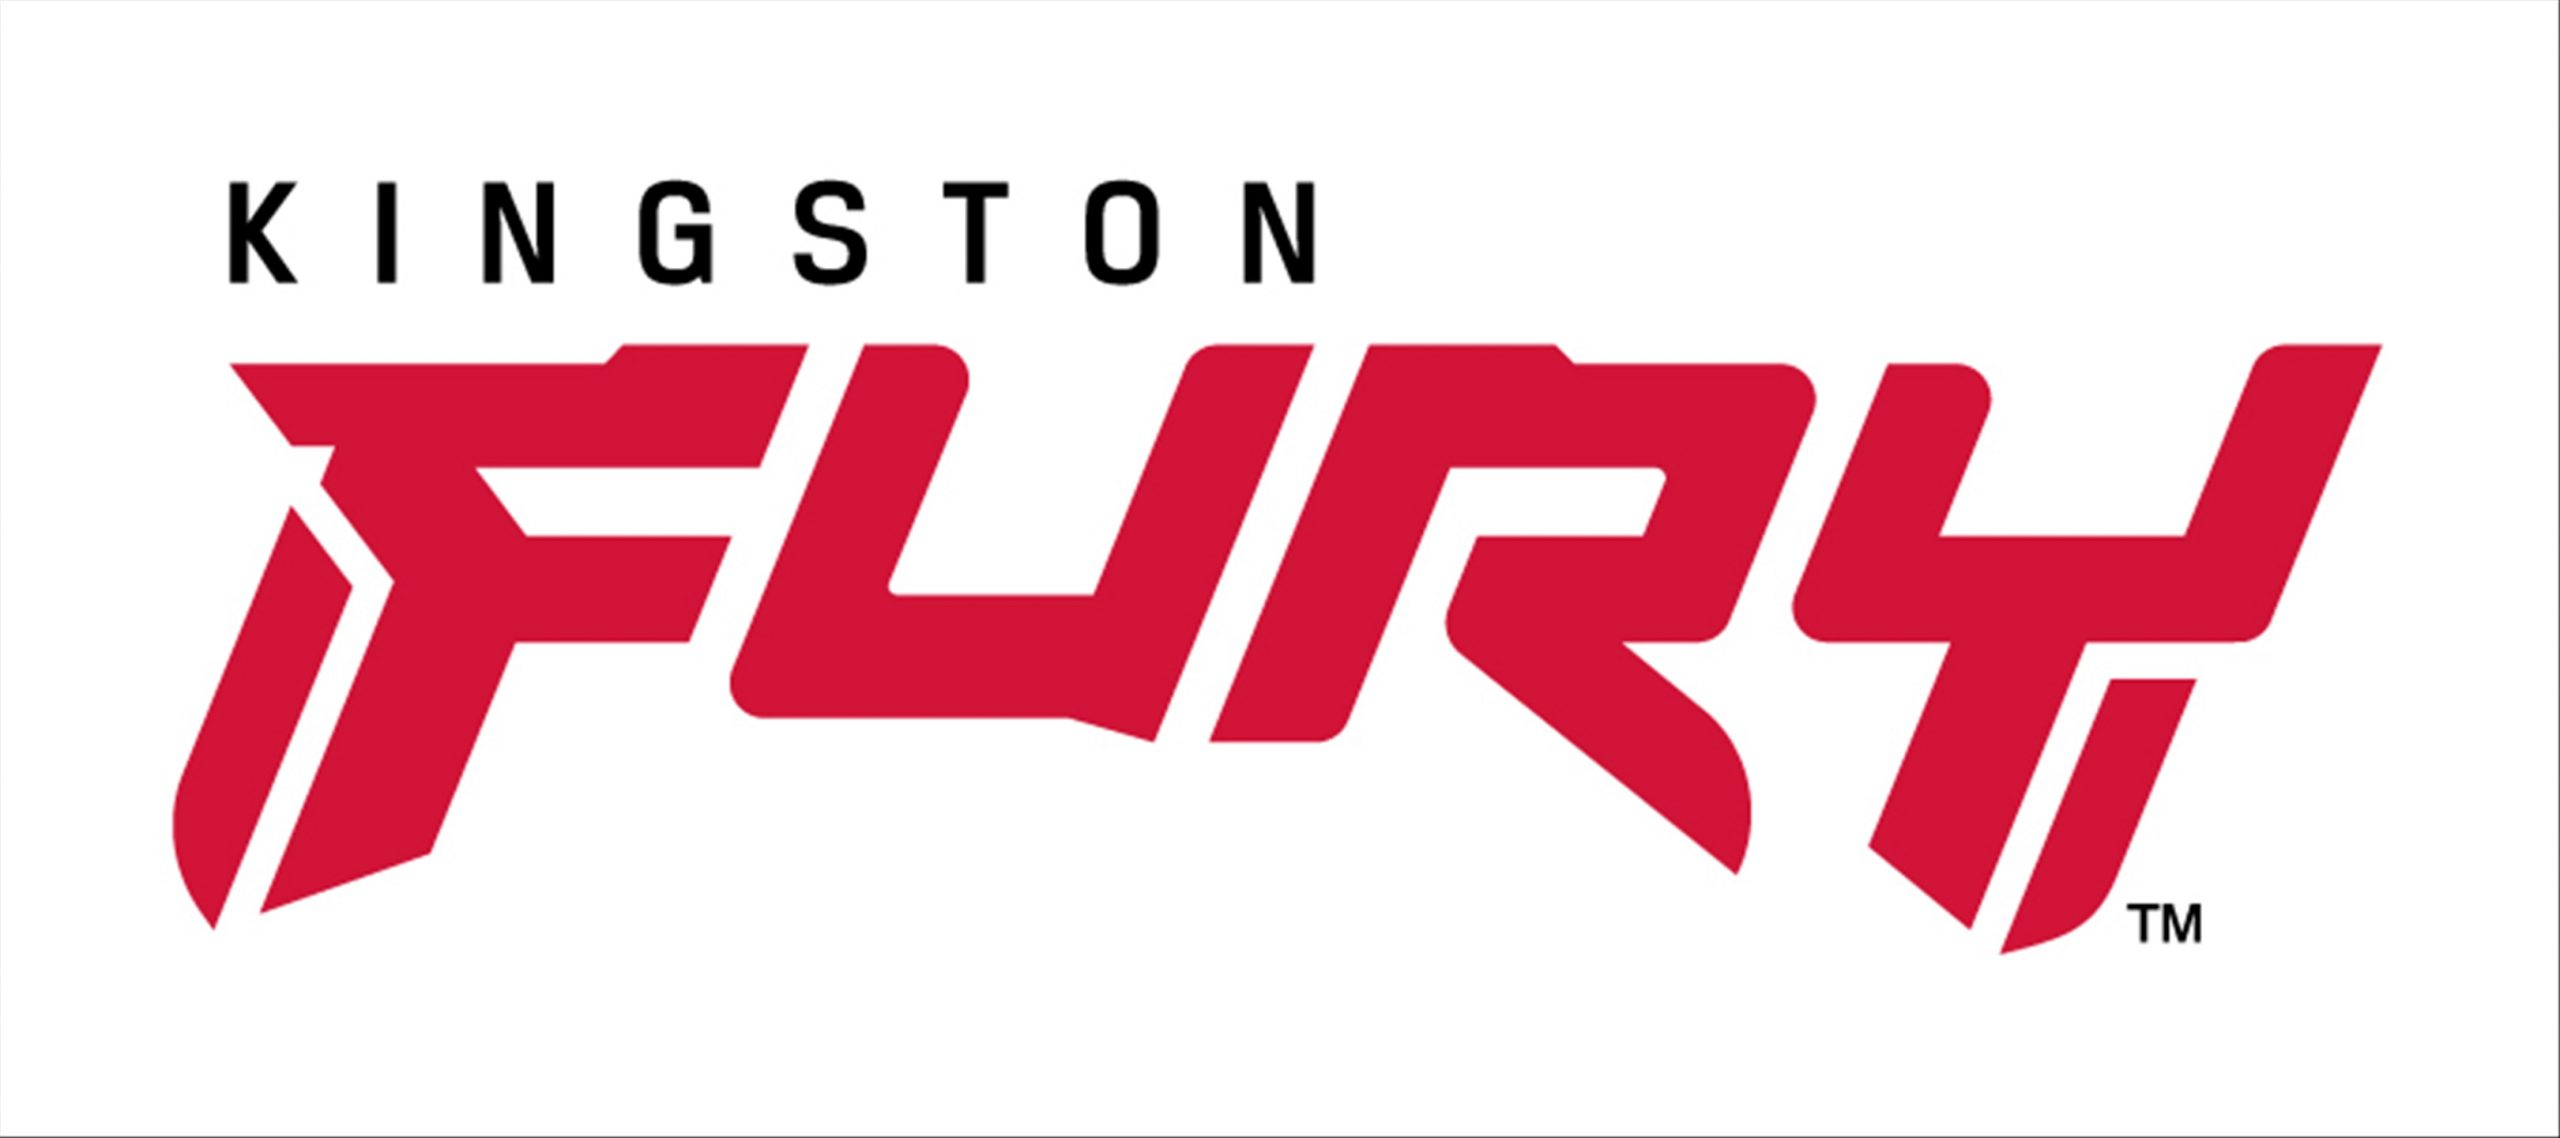 Kingston has just announced its new, high-performance, enthusiast and gaming brand: Kingston FURY